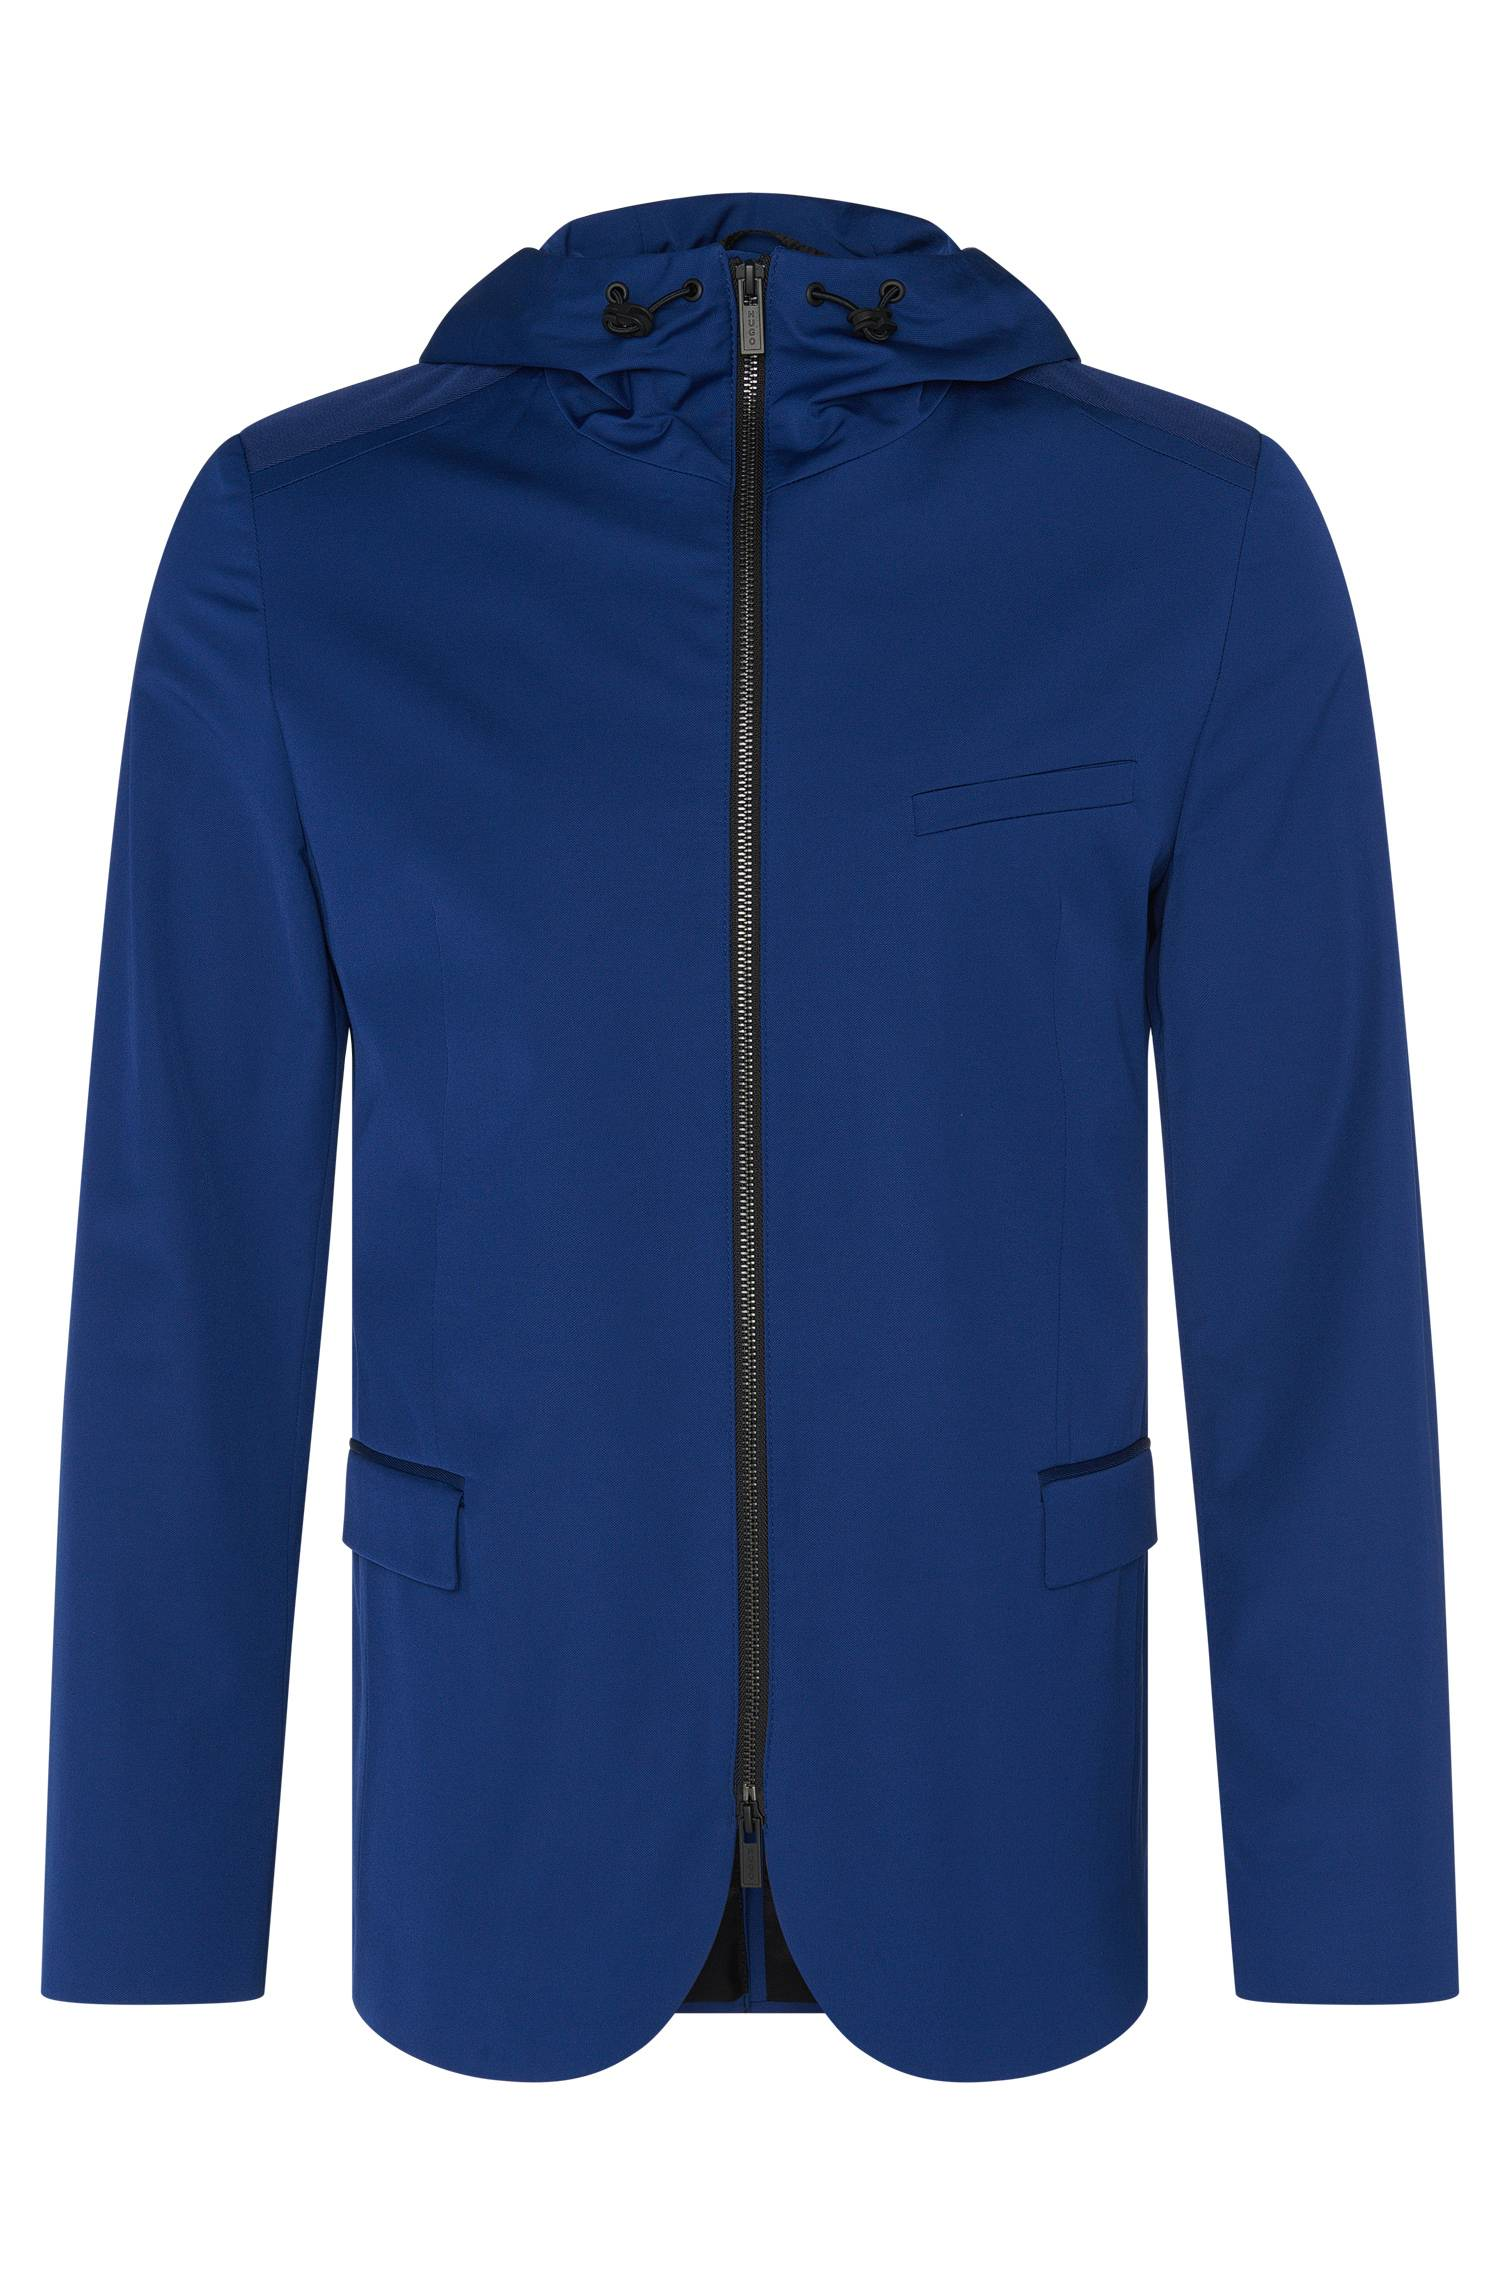 Regularfit hooded jacket with a tailored jacket design `Atlent`